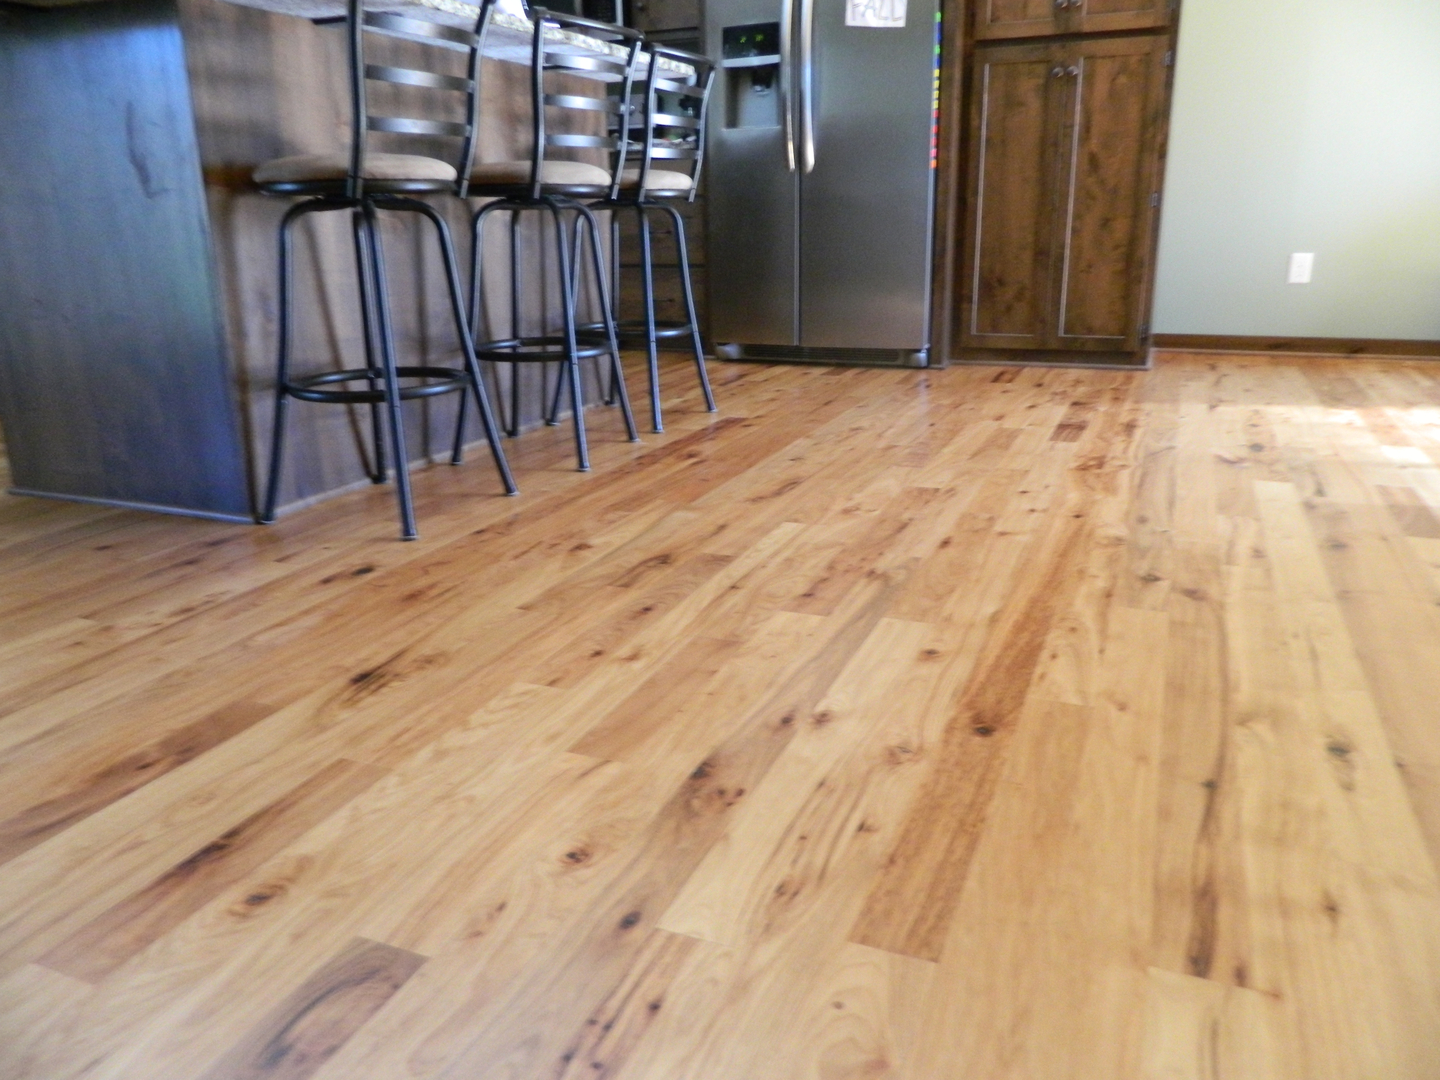 Hardwood Floor Refinishing Shako Mn Carpet Vidalondon